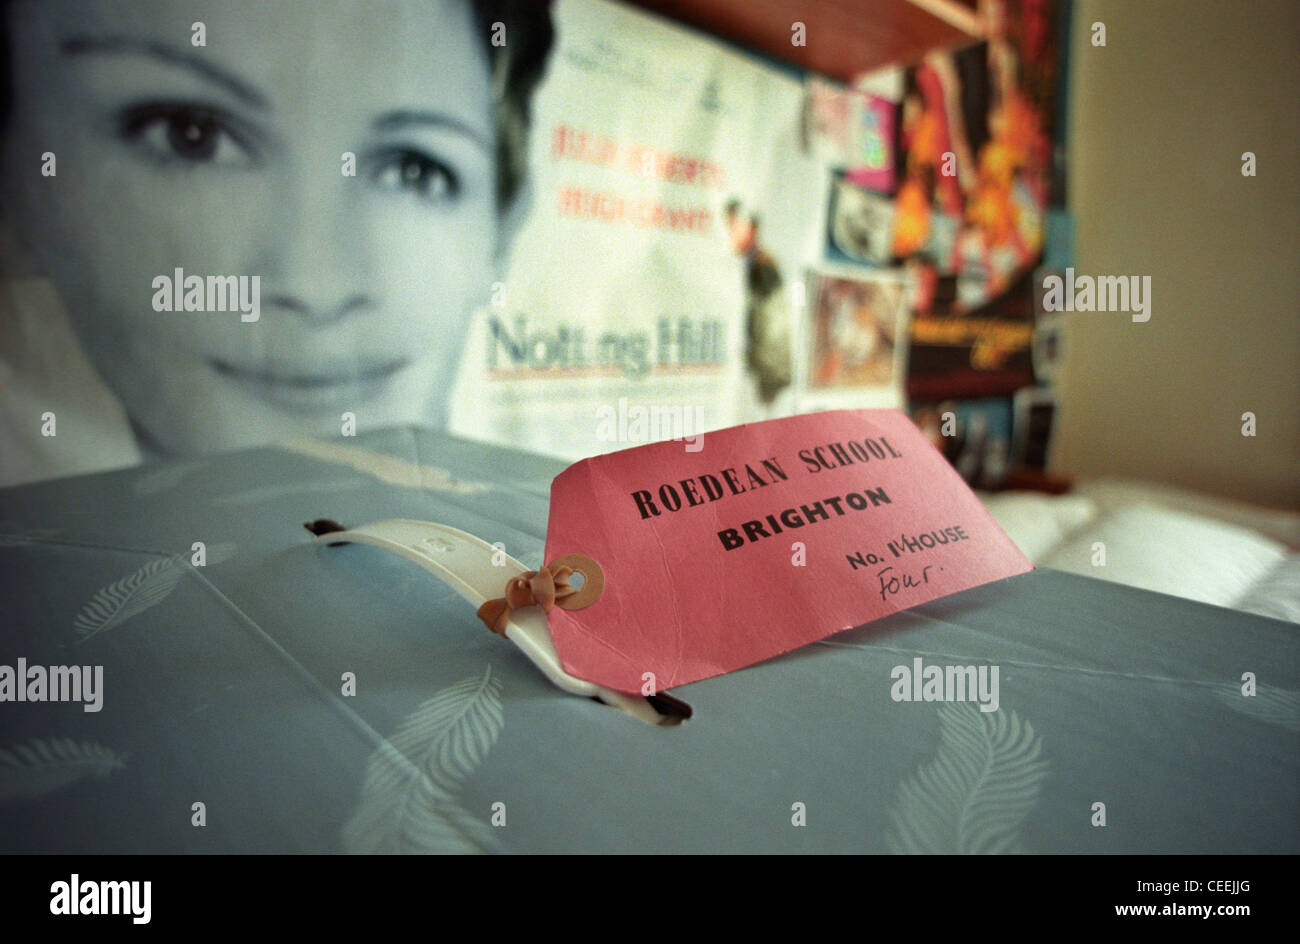 A Roedean schoolgirl's case with luggage label on the bed in front of a Julia Roberts 'Notting Hill' - Stock Image